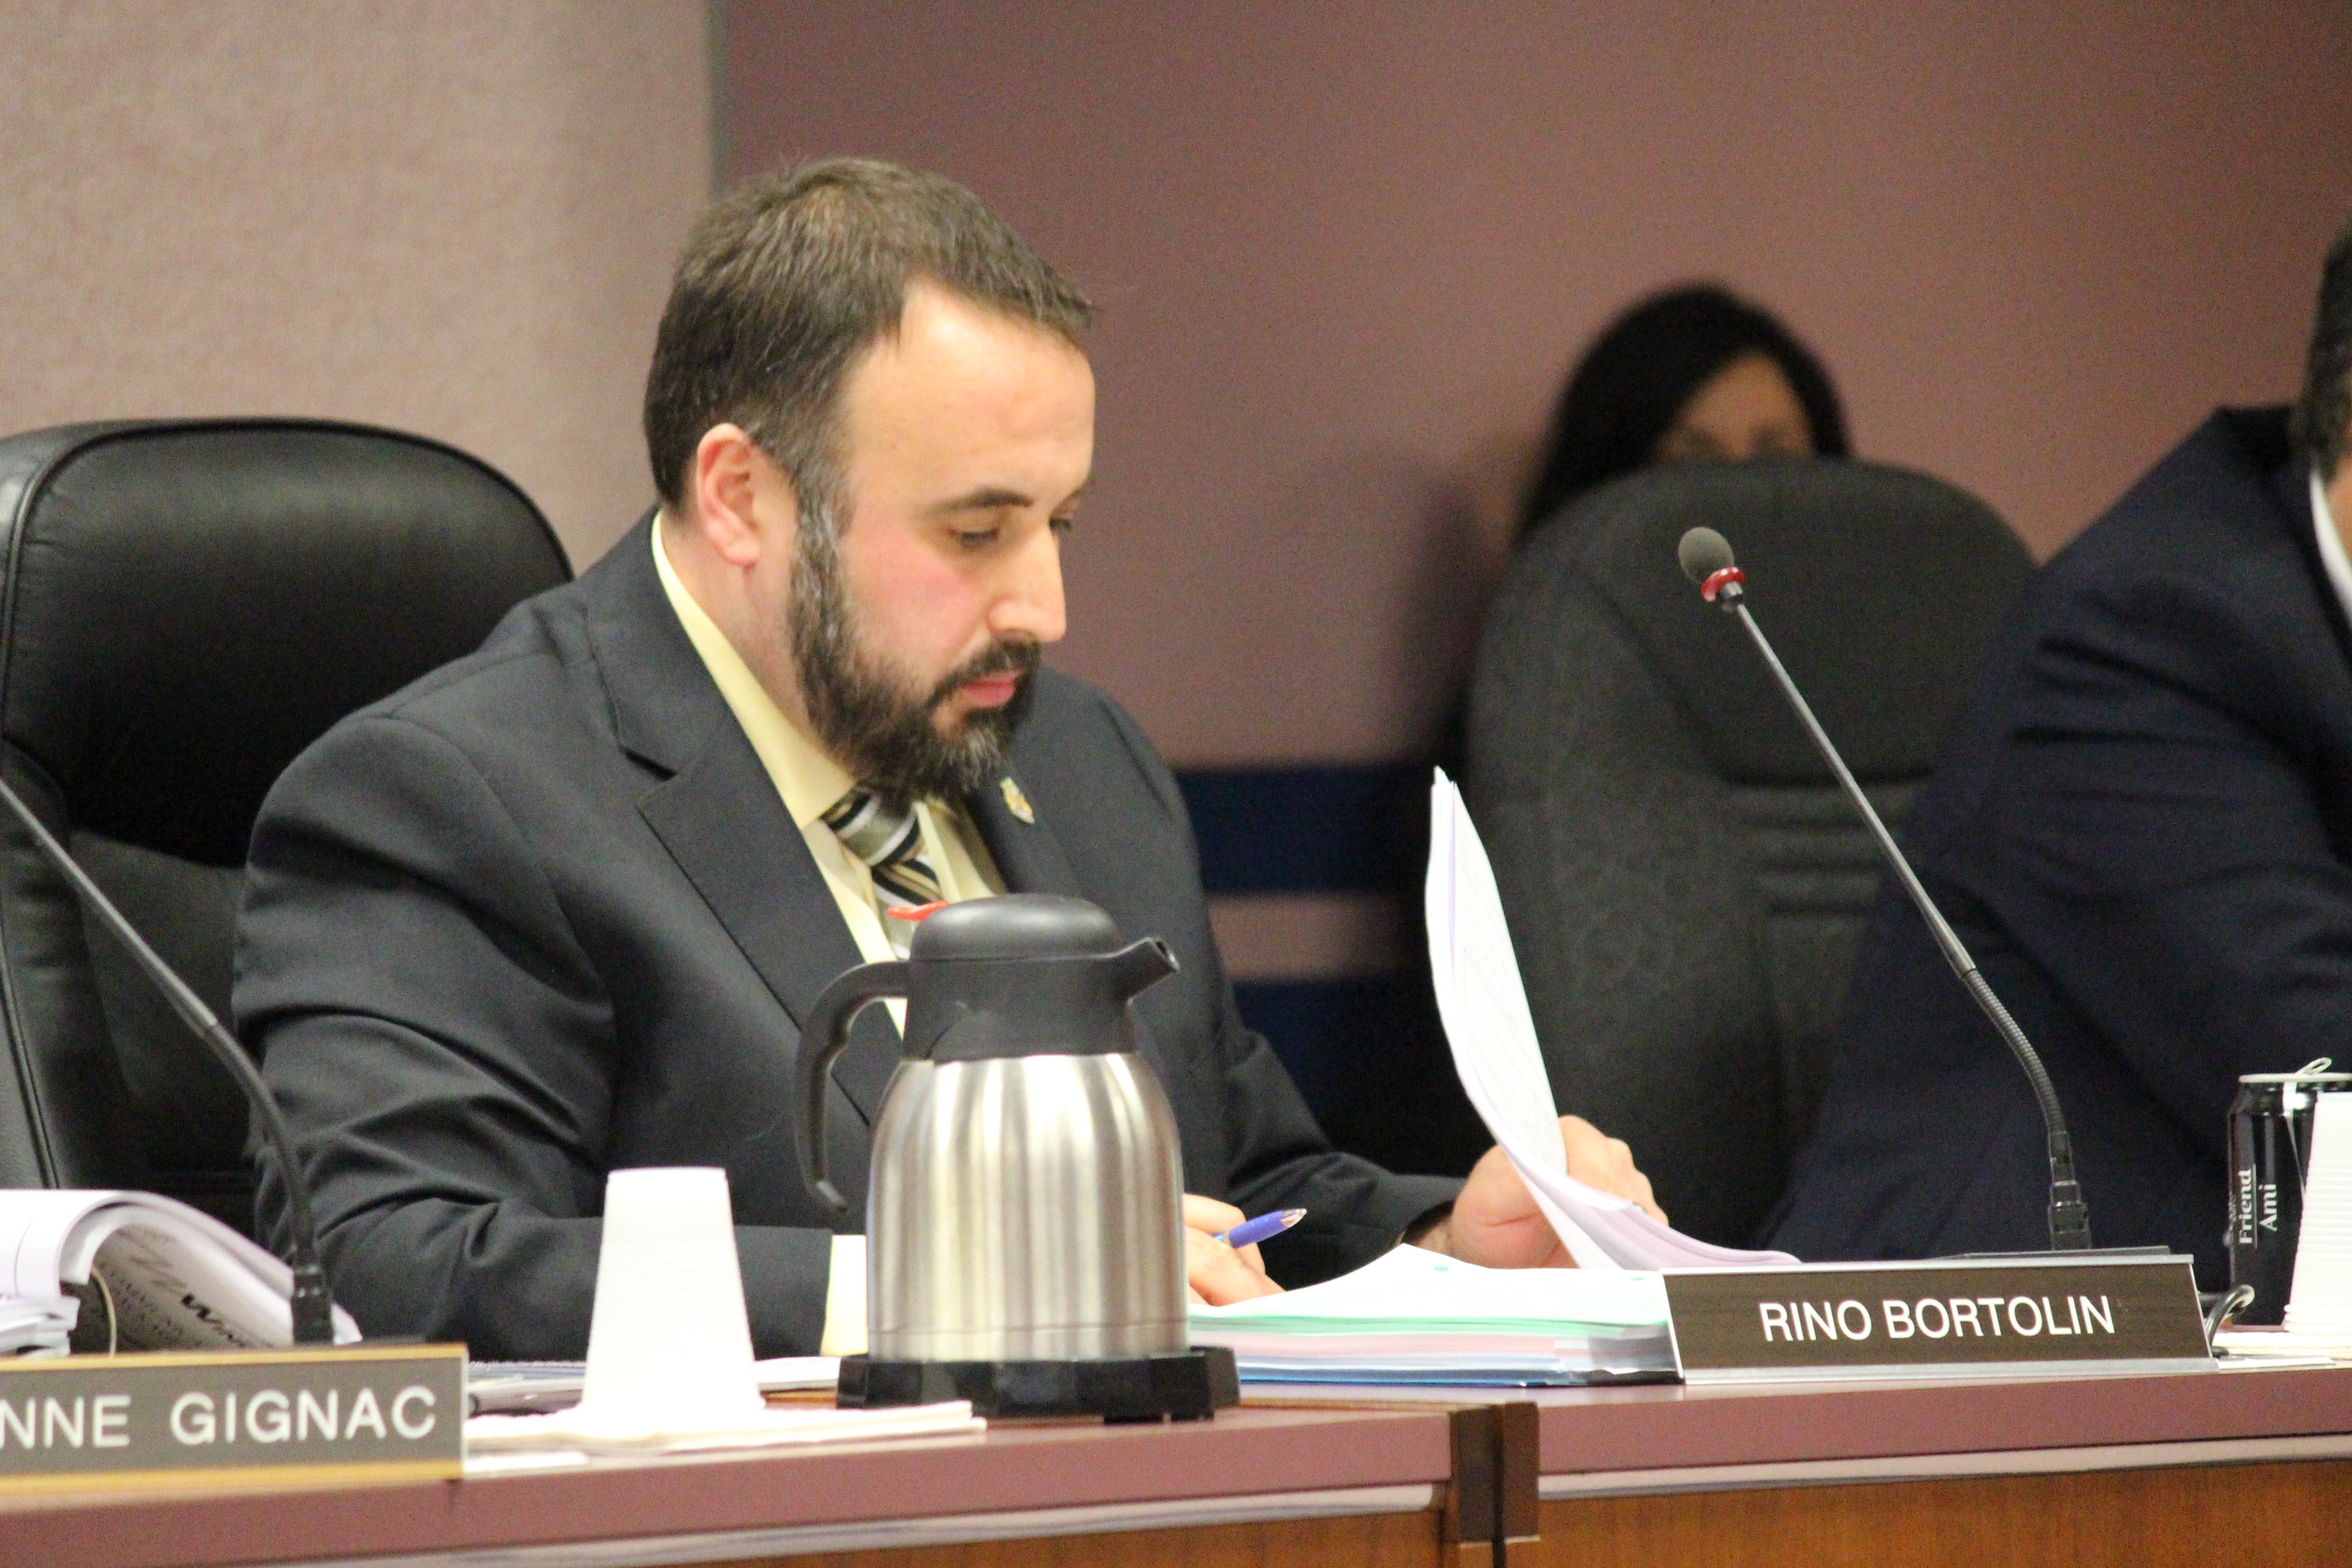 Windsor City Councillor Rino Bortolin, December 15, 2014. (photo by Mike Vlasveld)